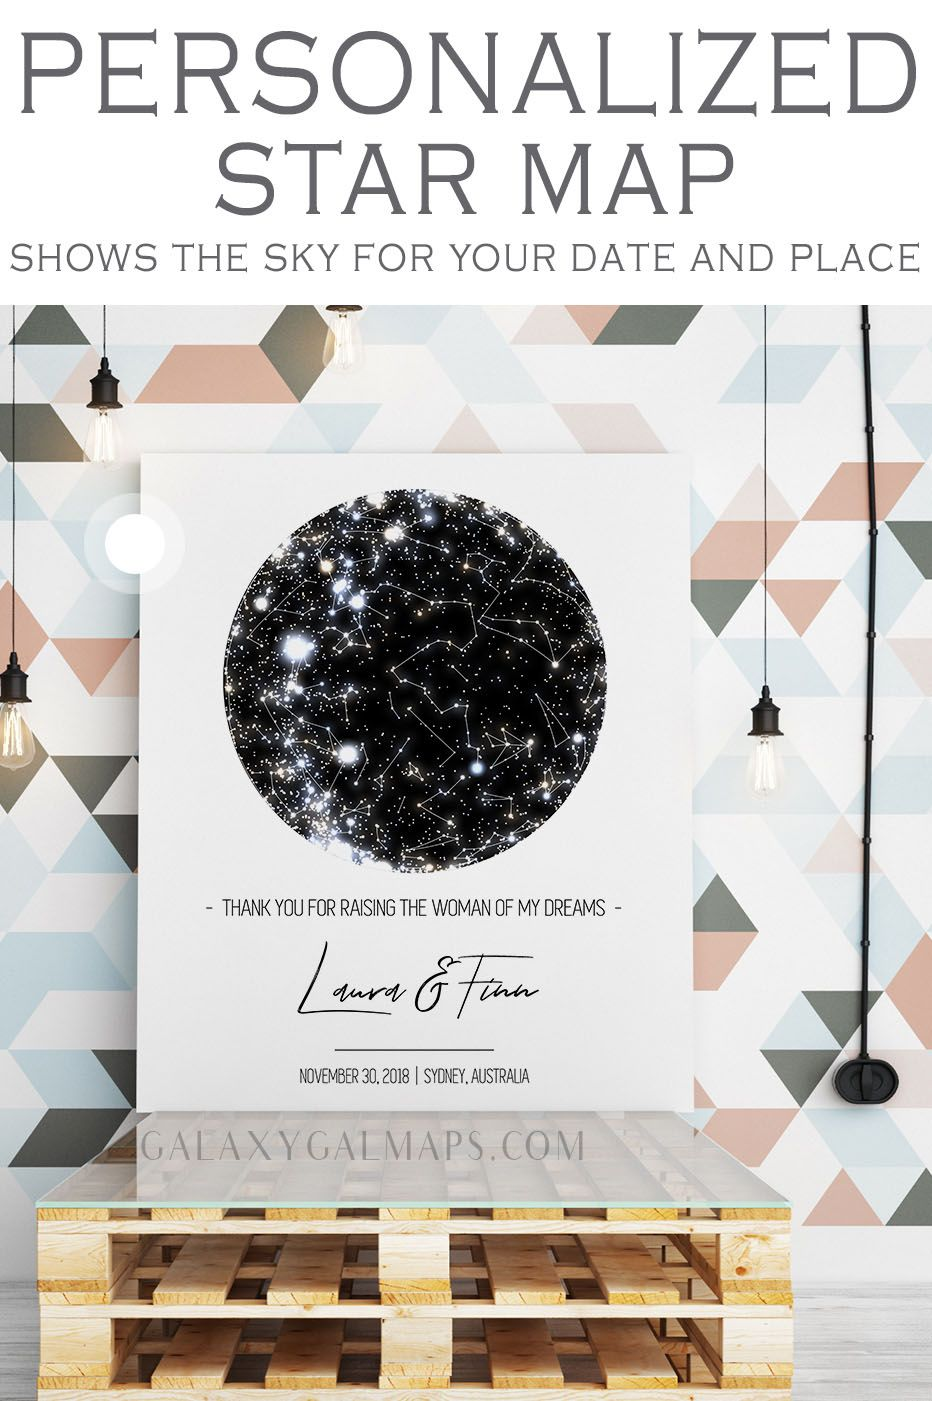 Custom Star Map For That Special Date 1st Anniversary Gift Custom Personalise Gift For Graduate Wed Valentine Gift For Dad Star Map 1st Anniversary Gifts